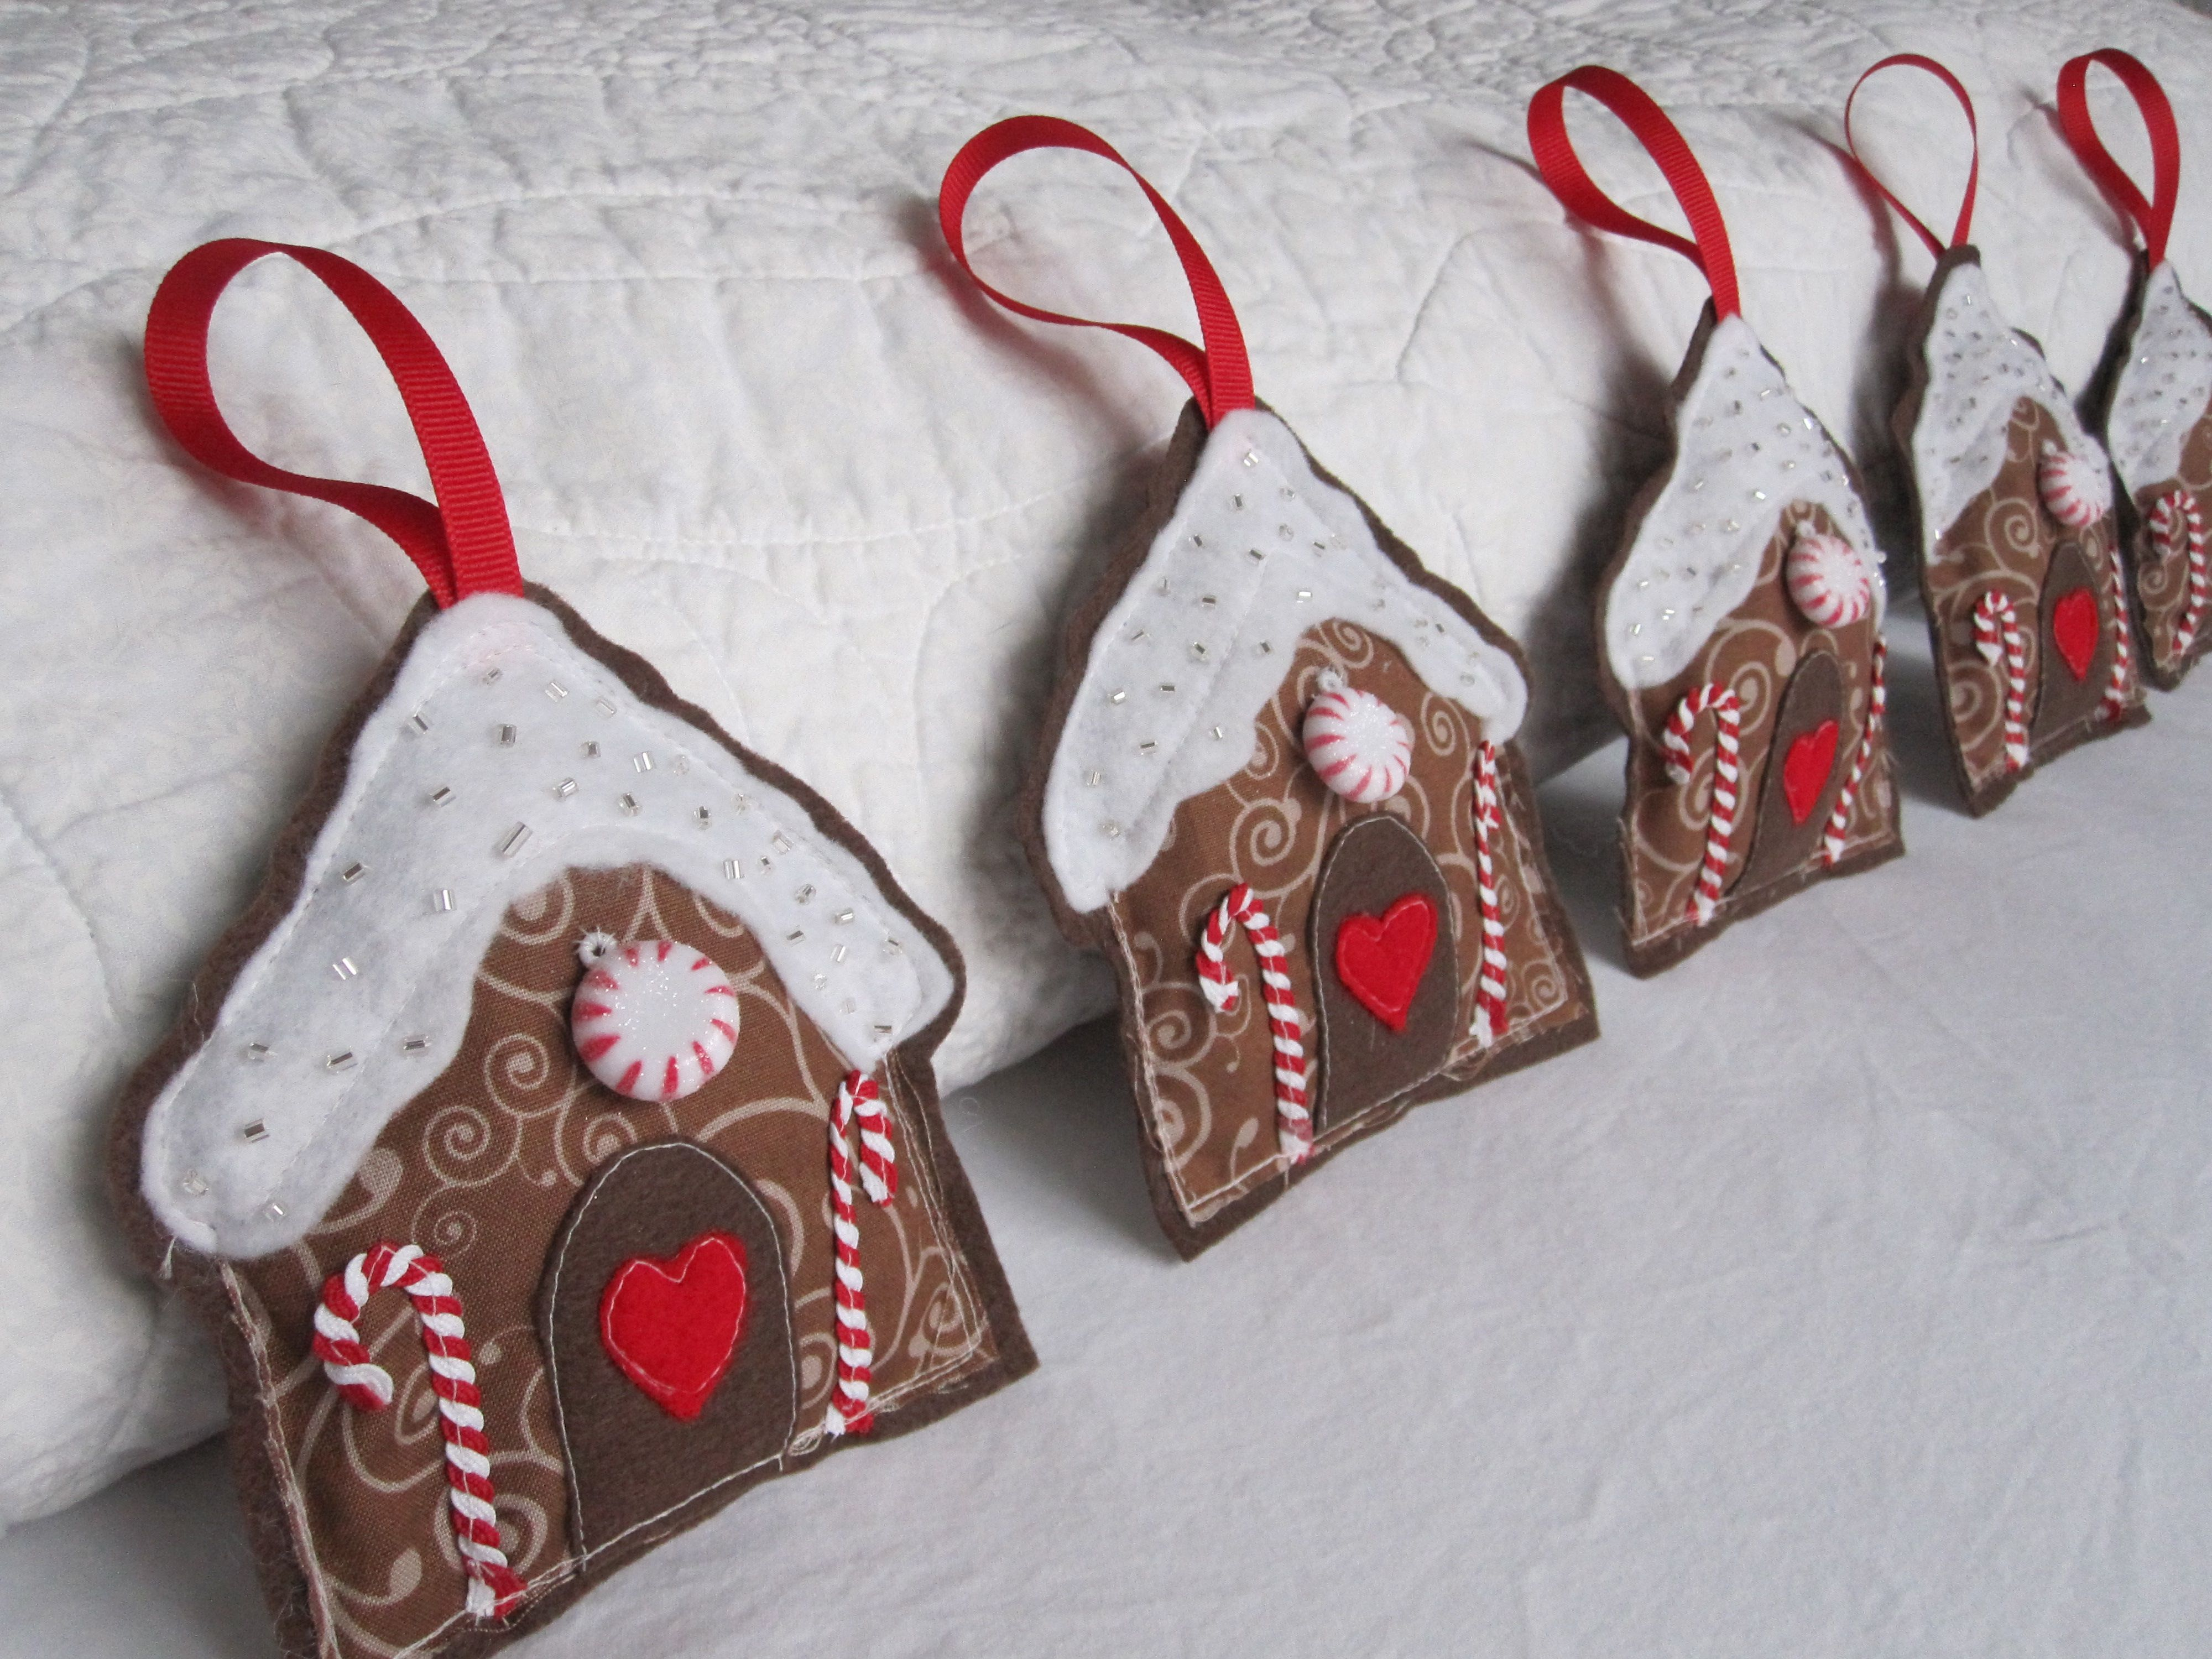 Felt Gingerbread House Ornaments Felt Christmas Ornaments Felt